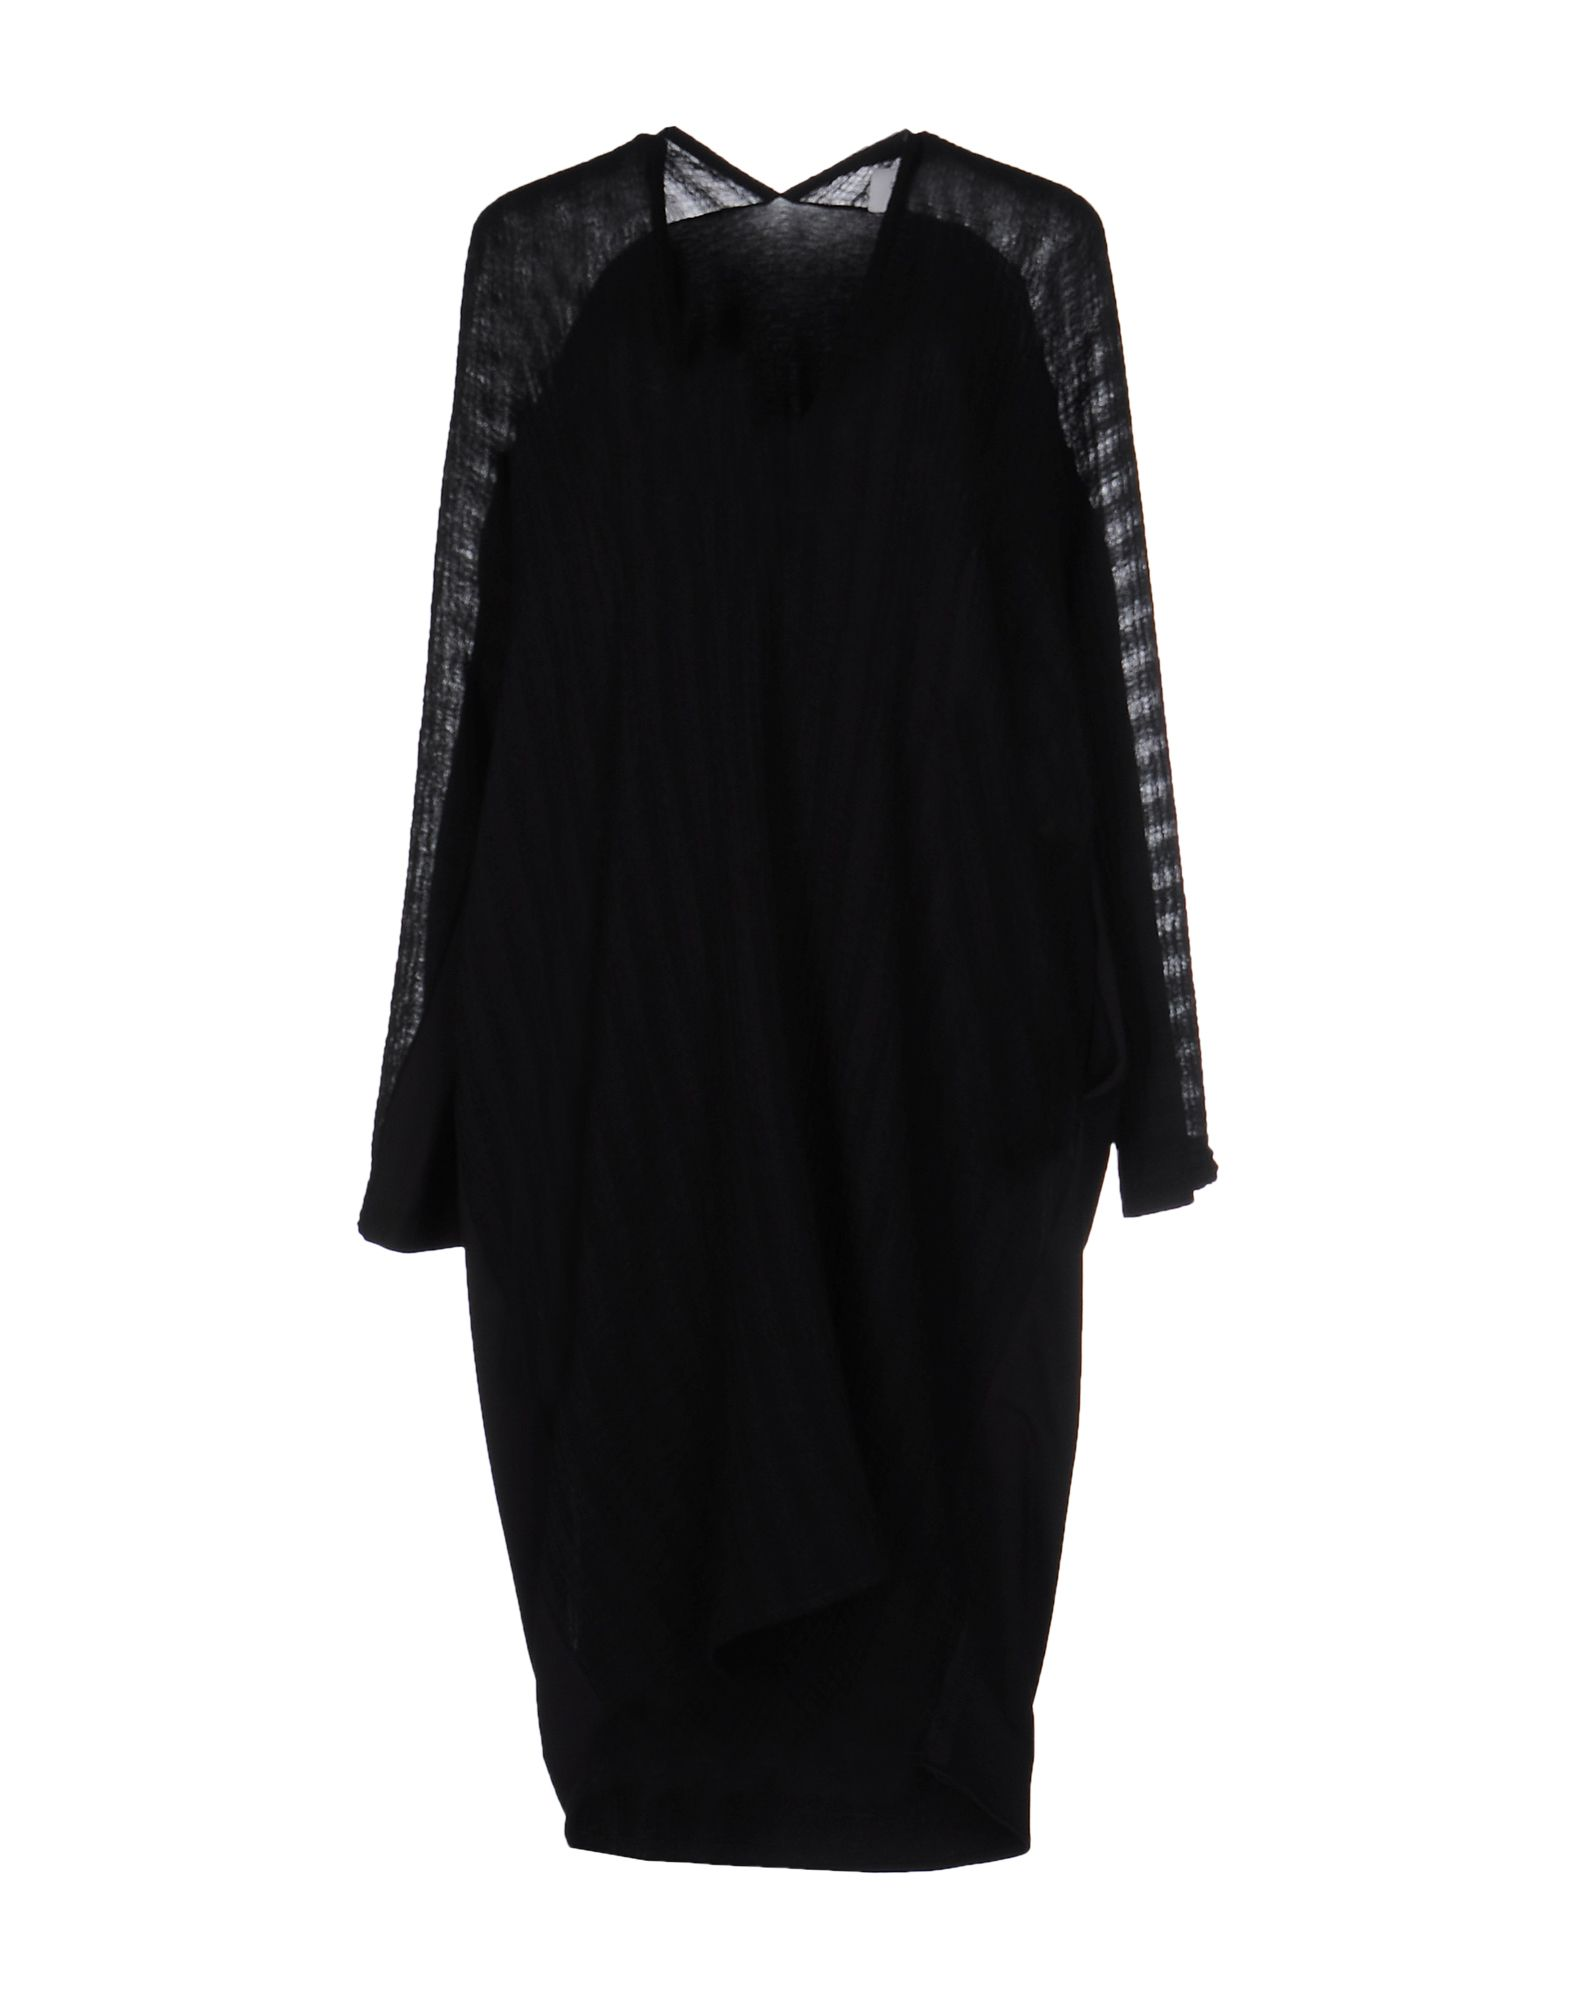 PAOLO ERRICO Knee-Length Dresses in Black